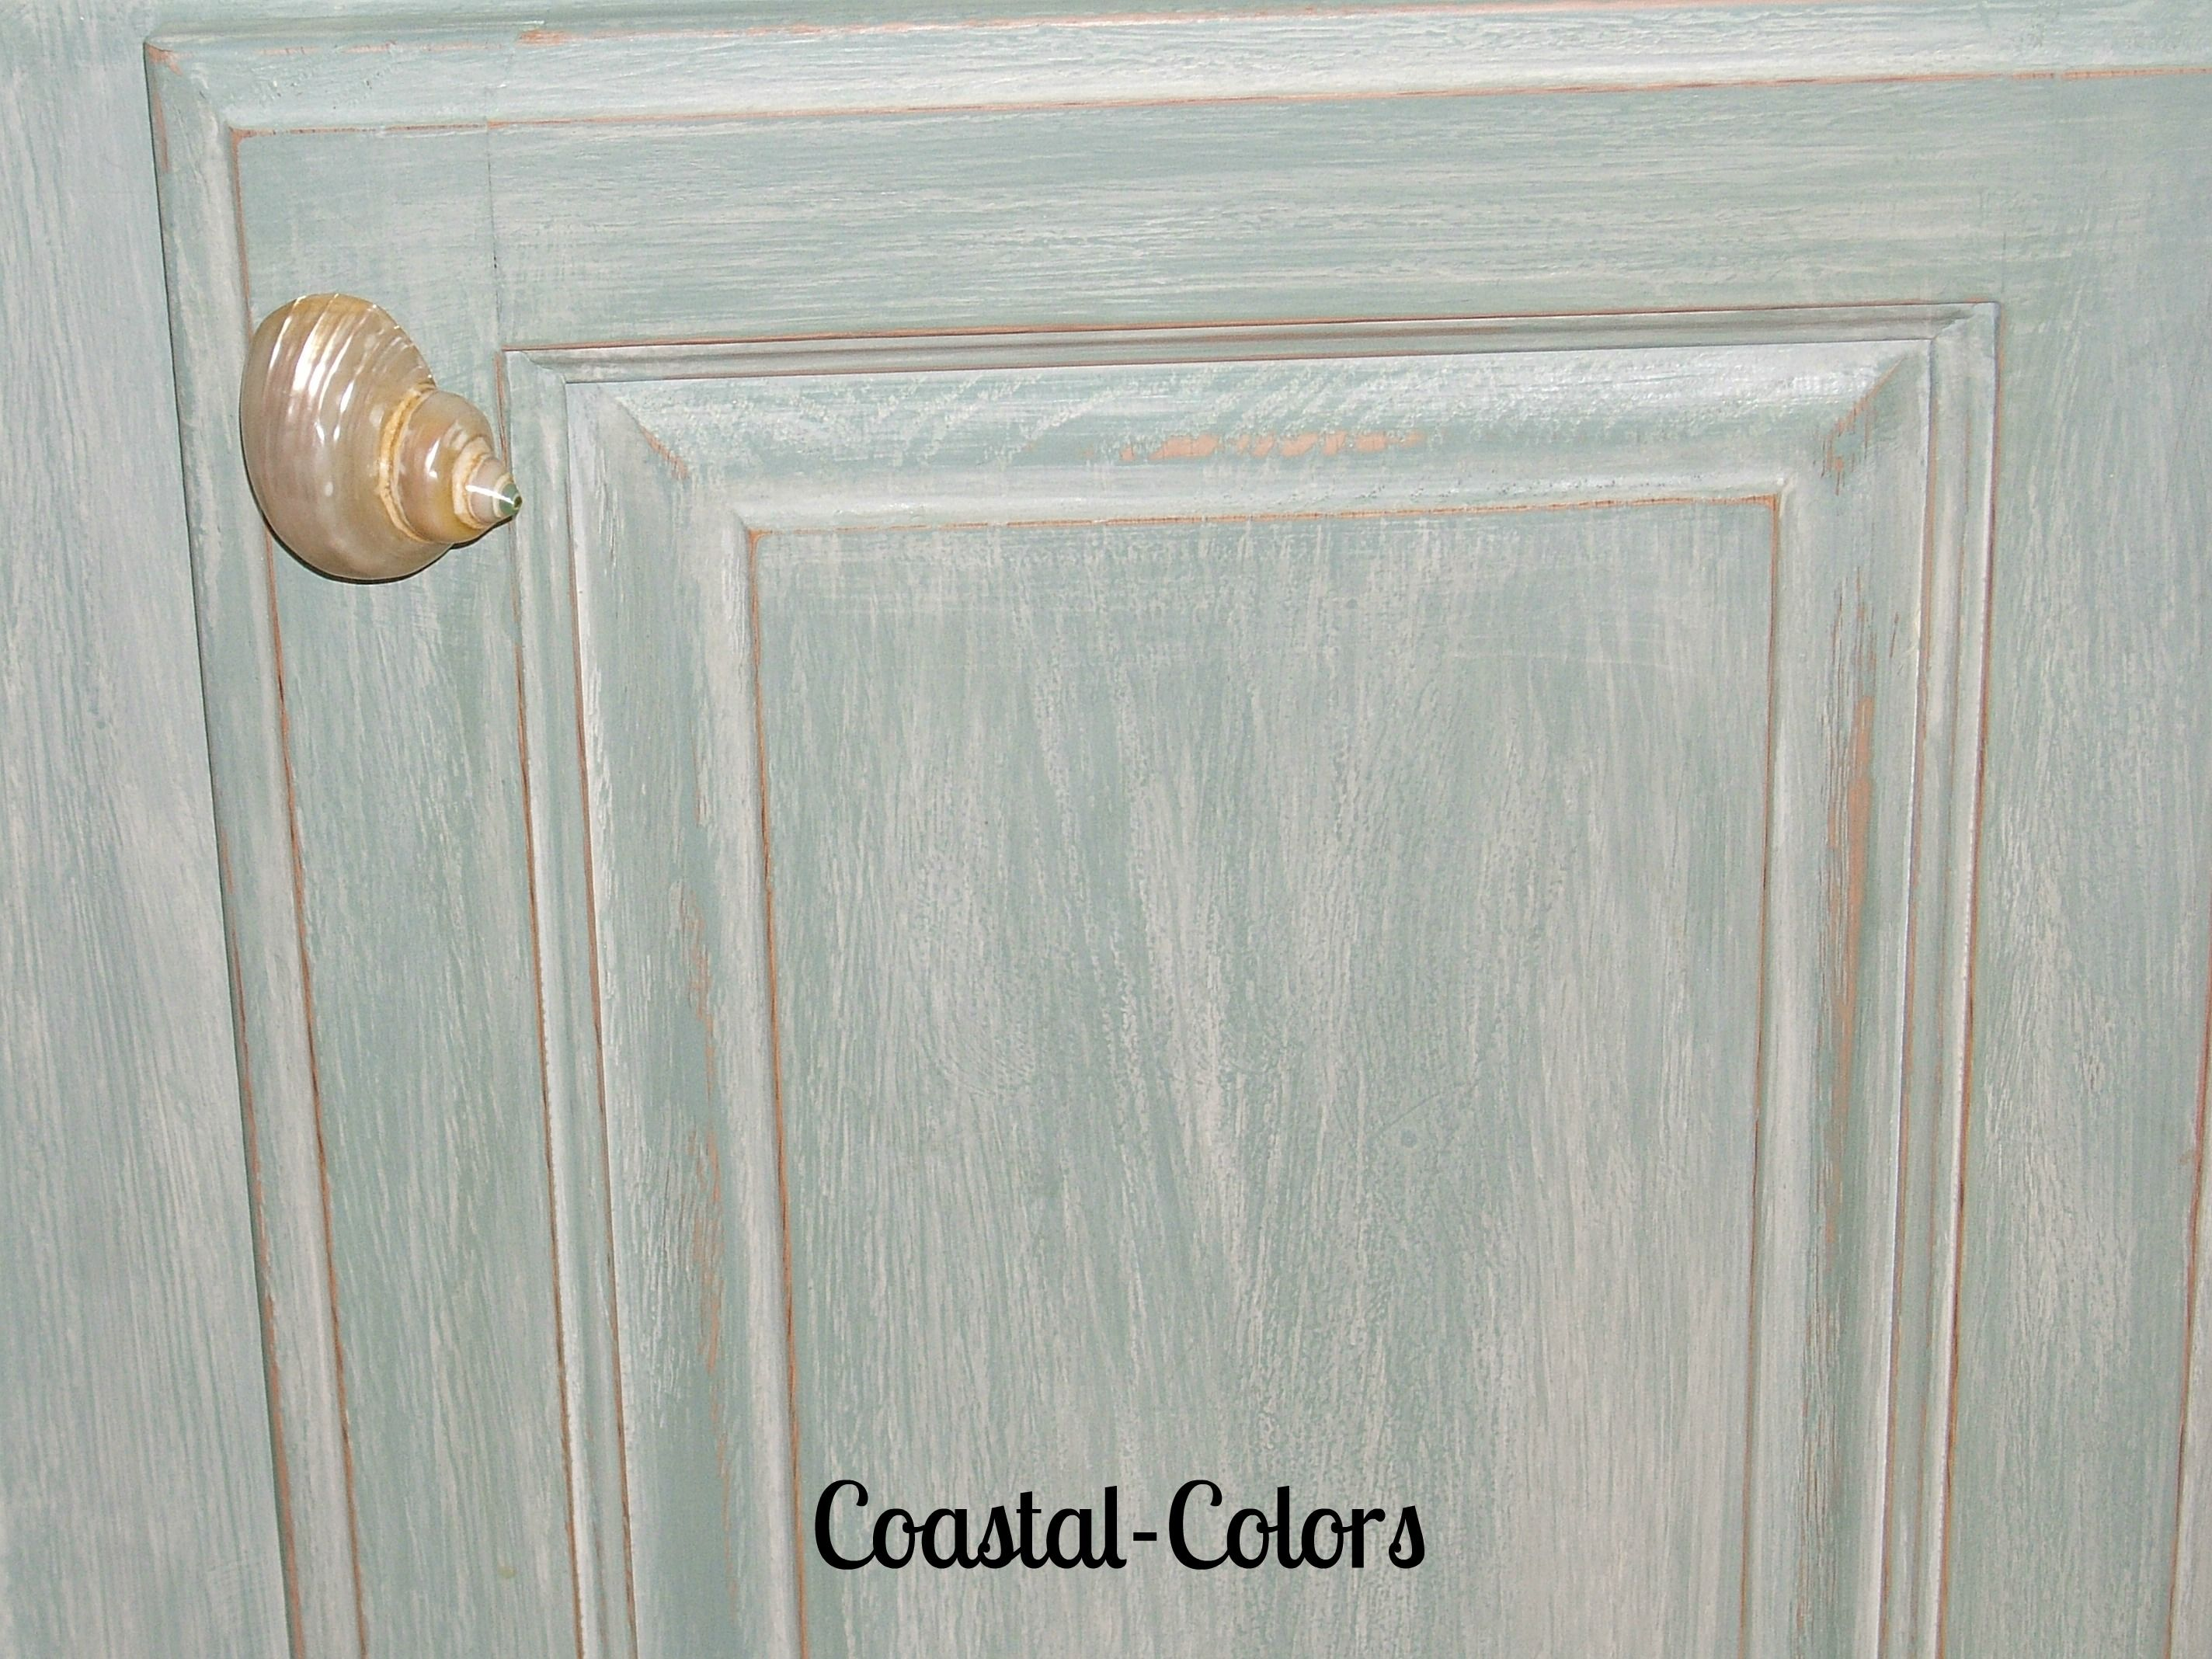 Beachy Chalk Painted Cabinets With A Color Wash Painted